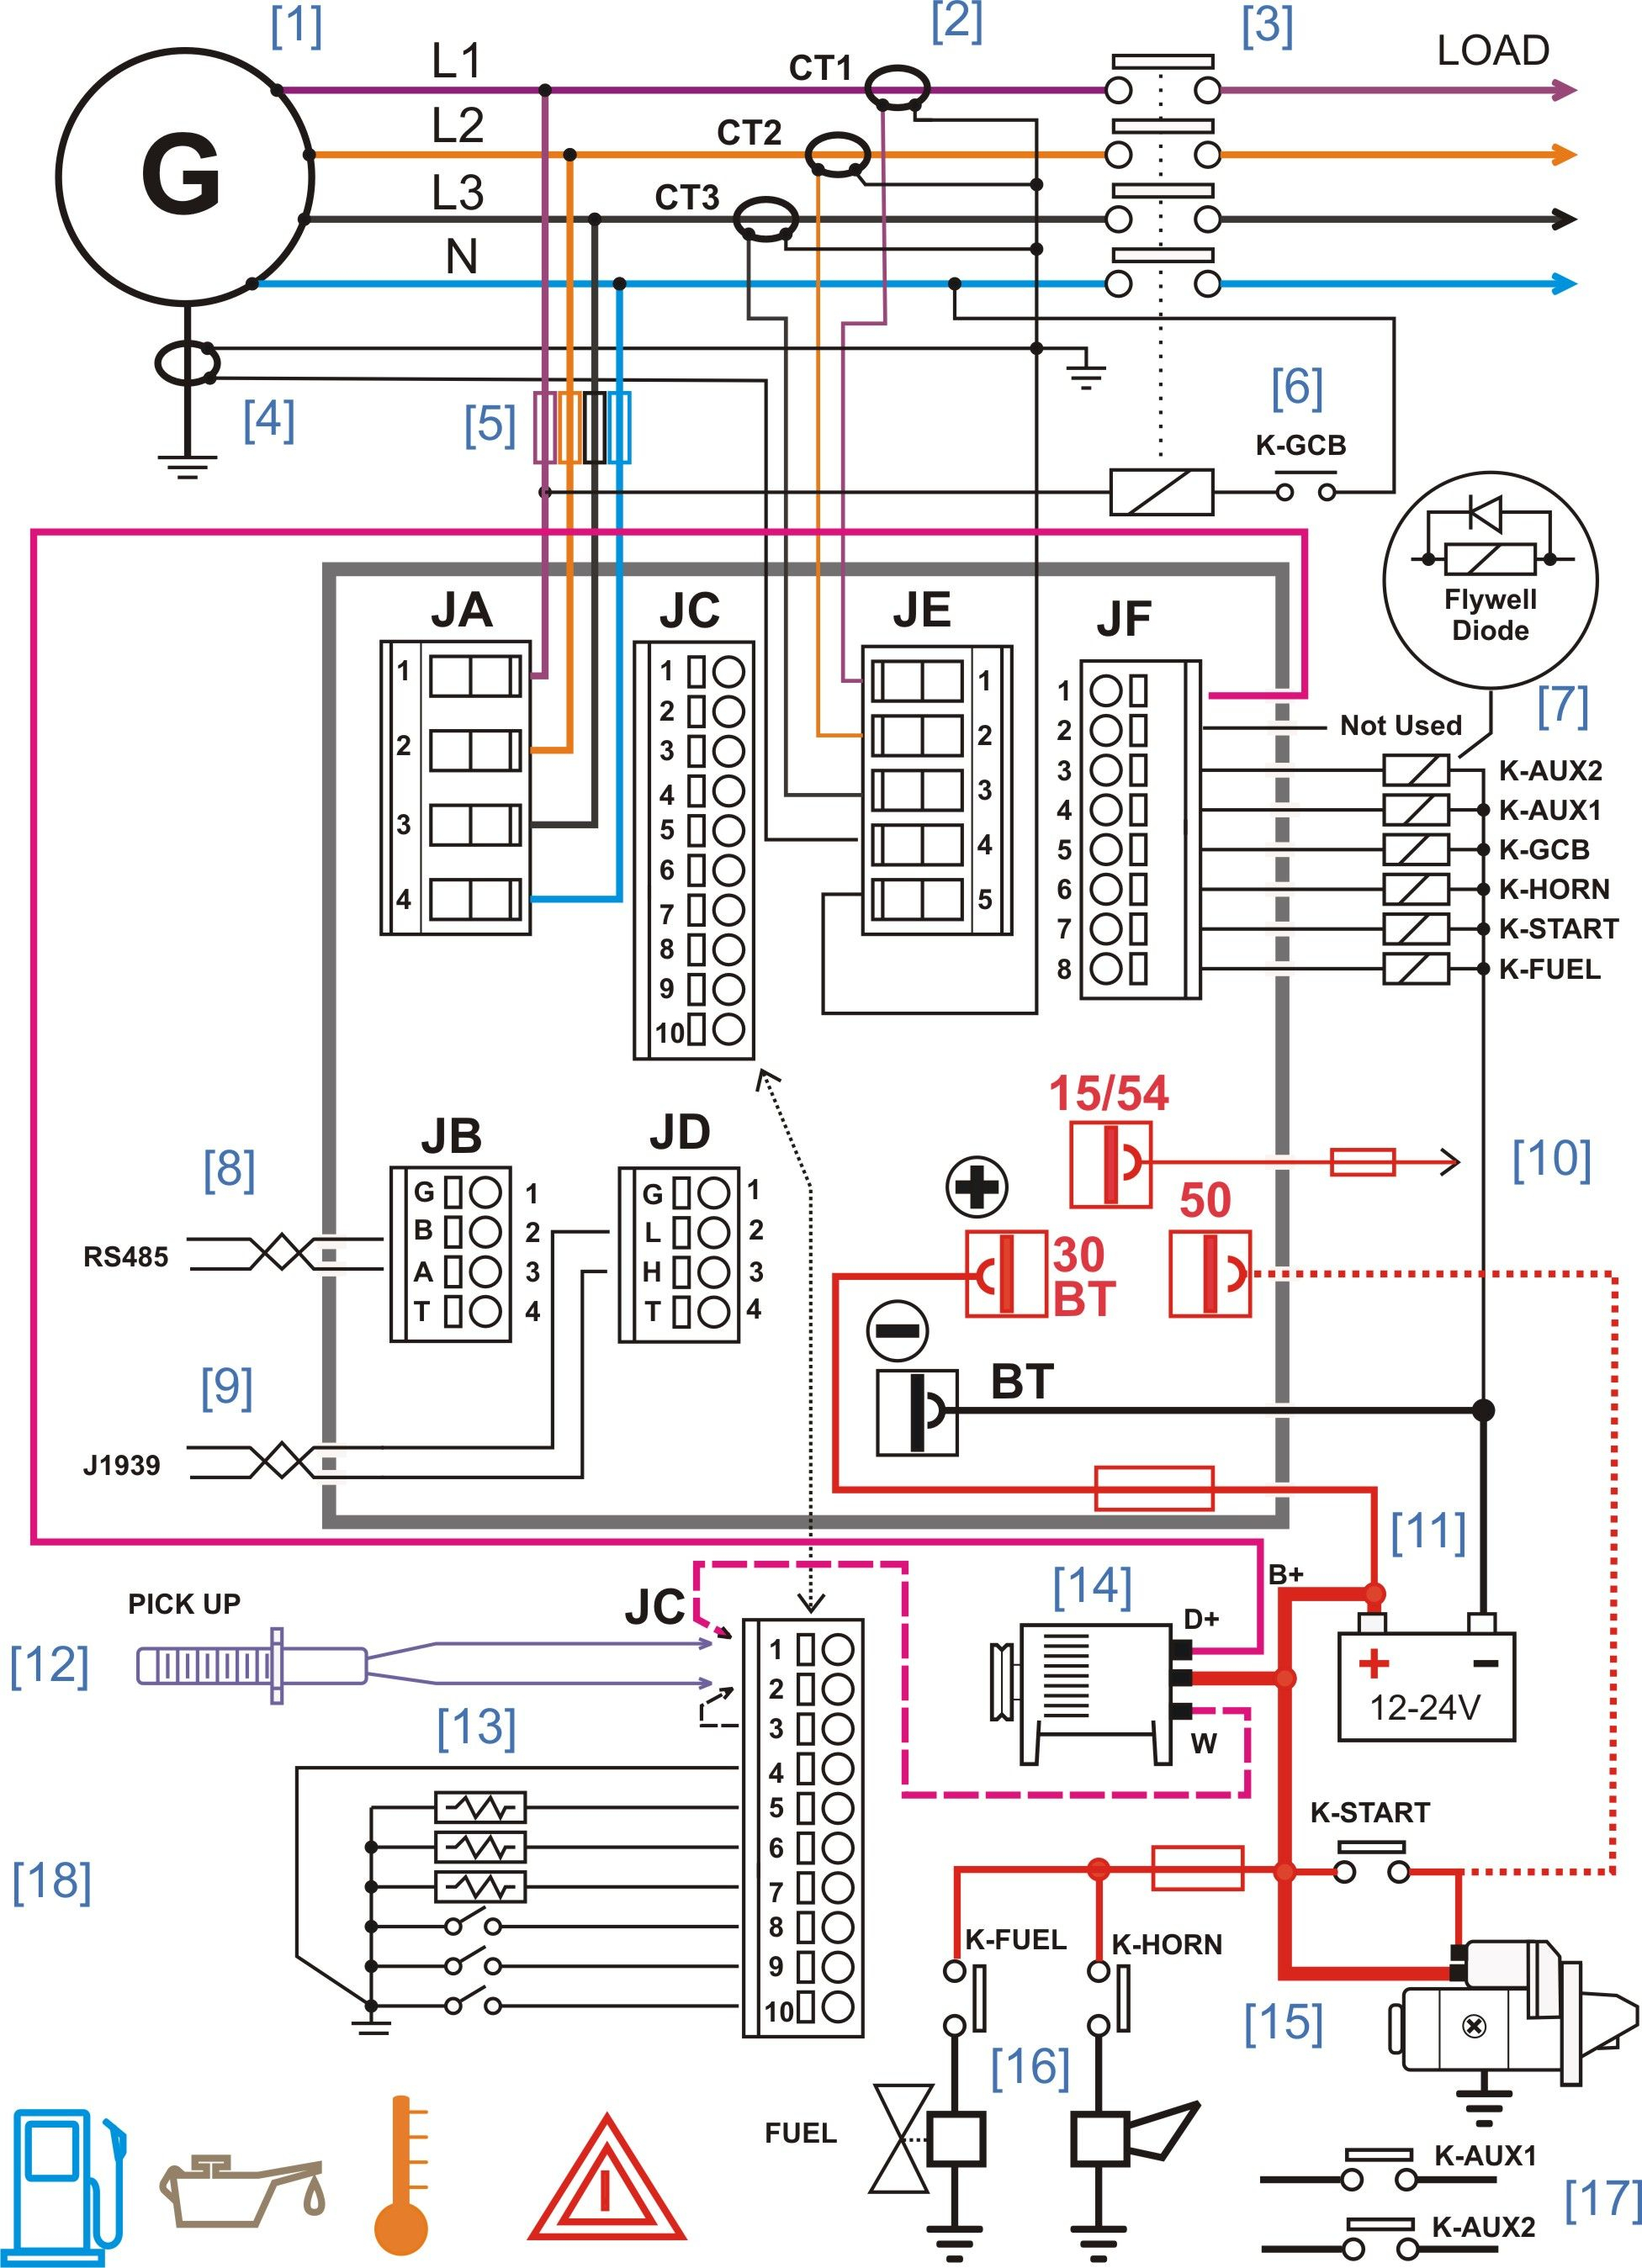 duplex pump control panel wiring diagram Collection-Diesel Generator Control Panel Wiring Diagram 14-k